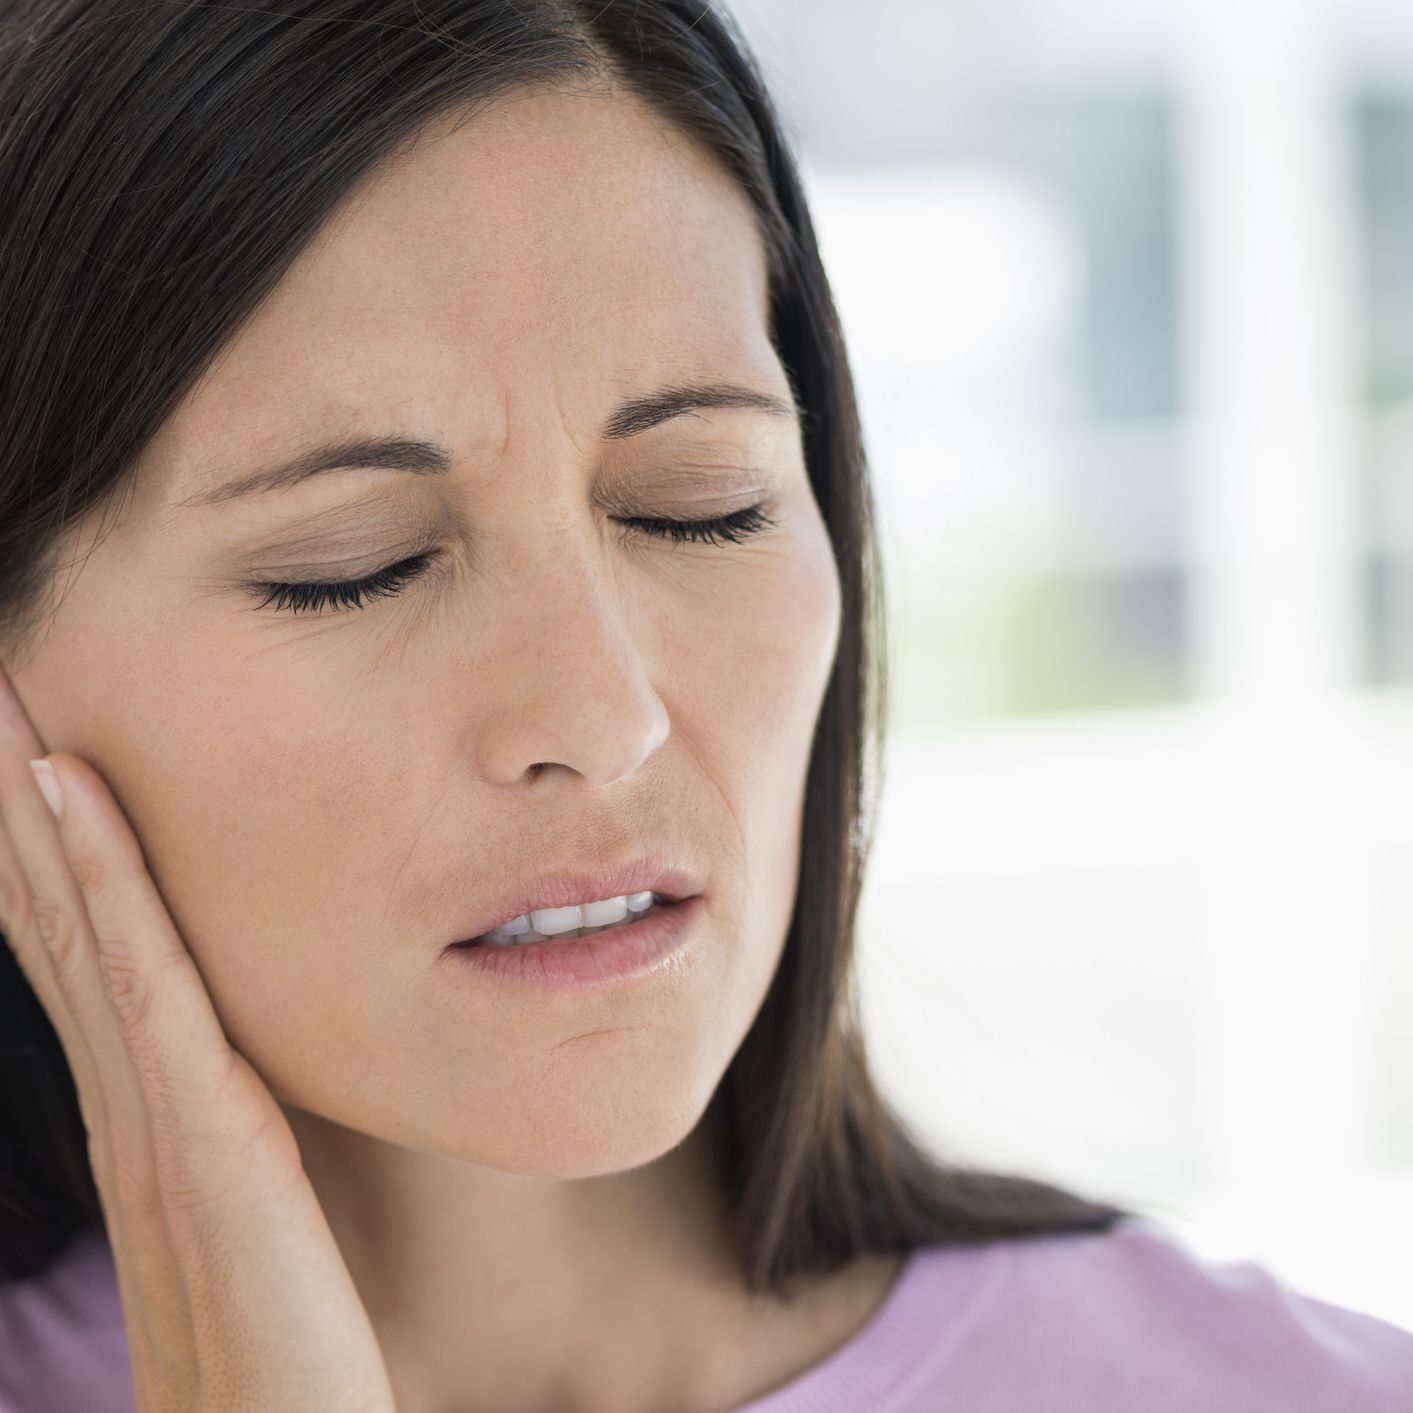 Ear Pain: Causes, Treatment, and When to See a Doctor